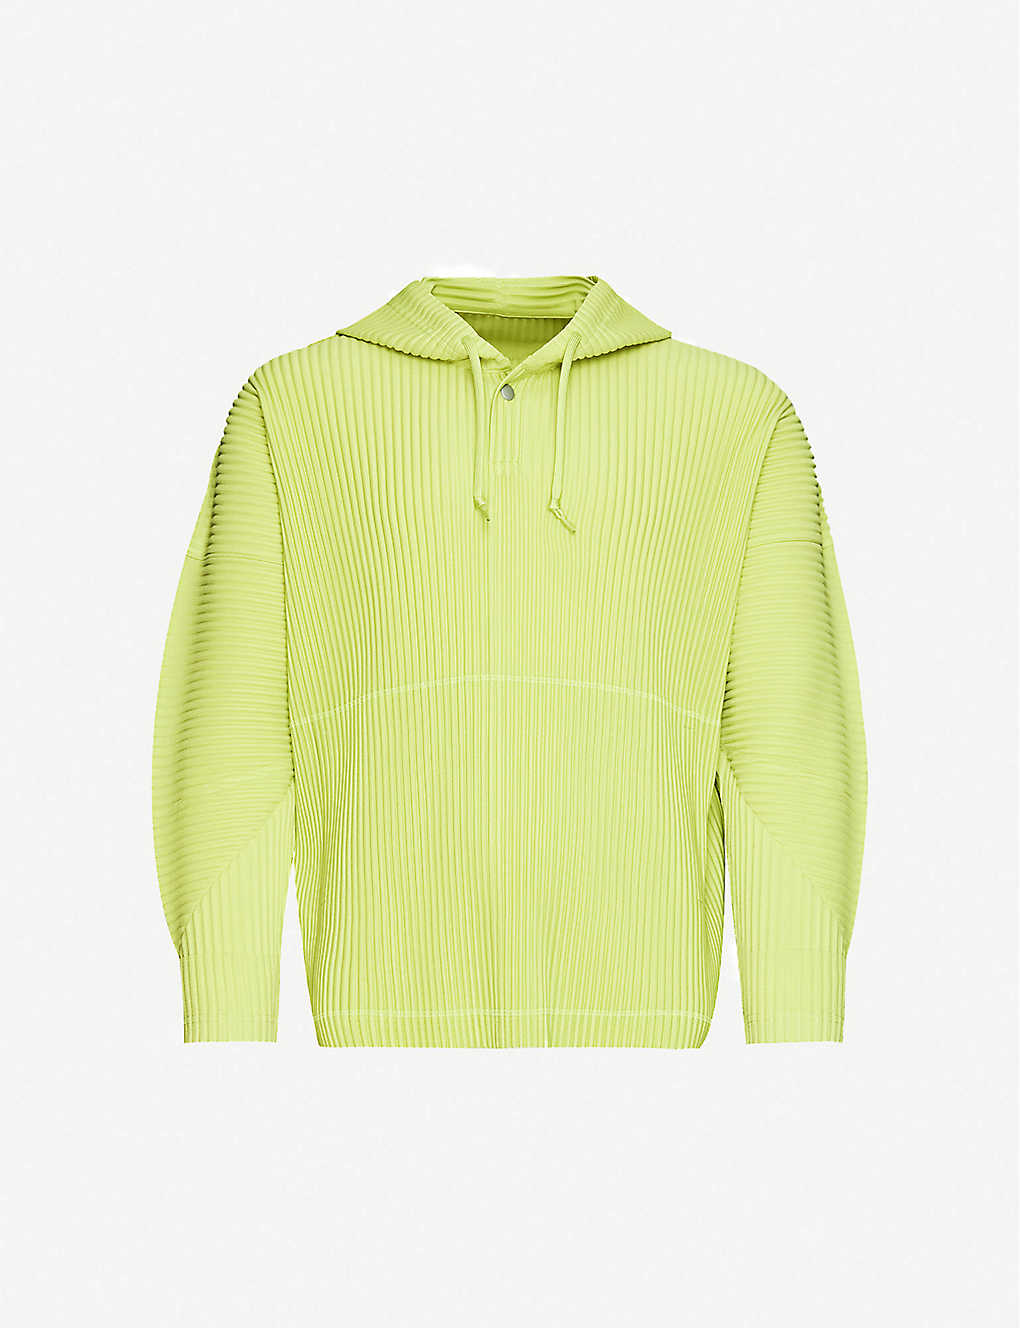 HOMME PLISSE ISSEY MIYAKE: Pleated woven hoody